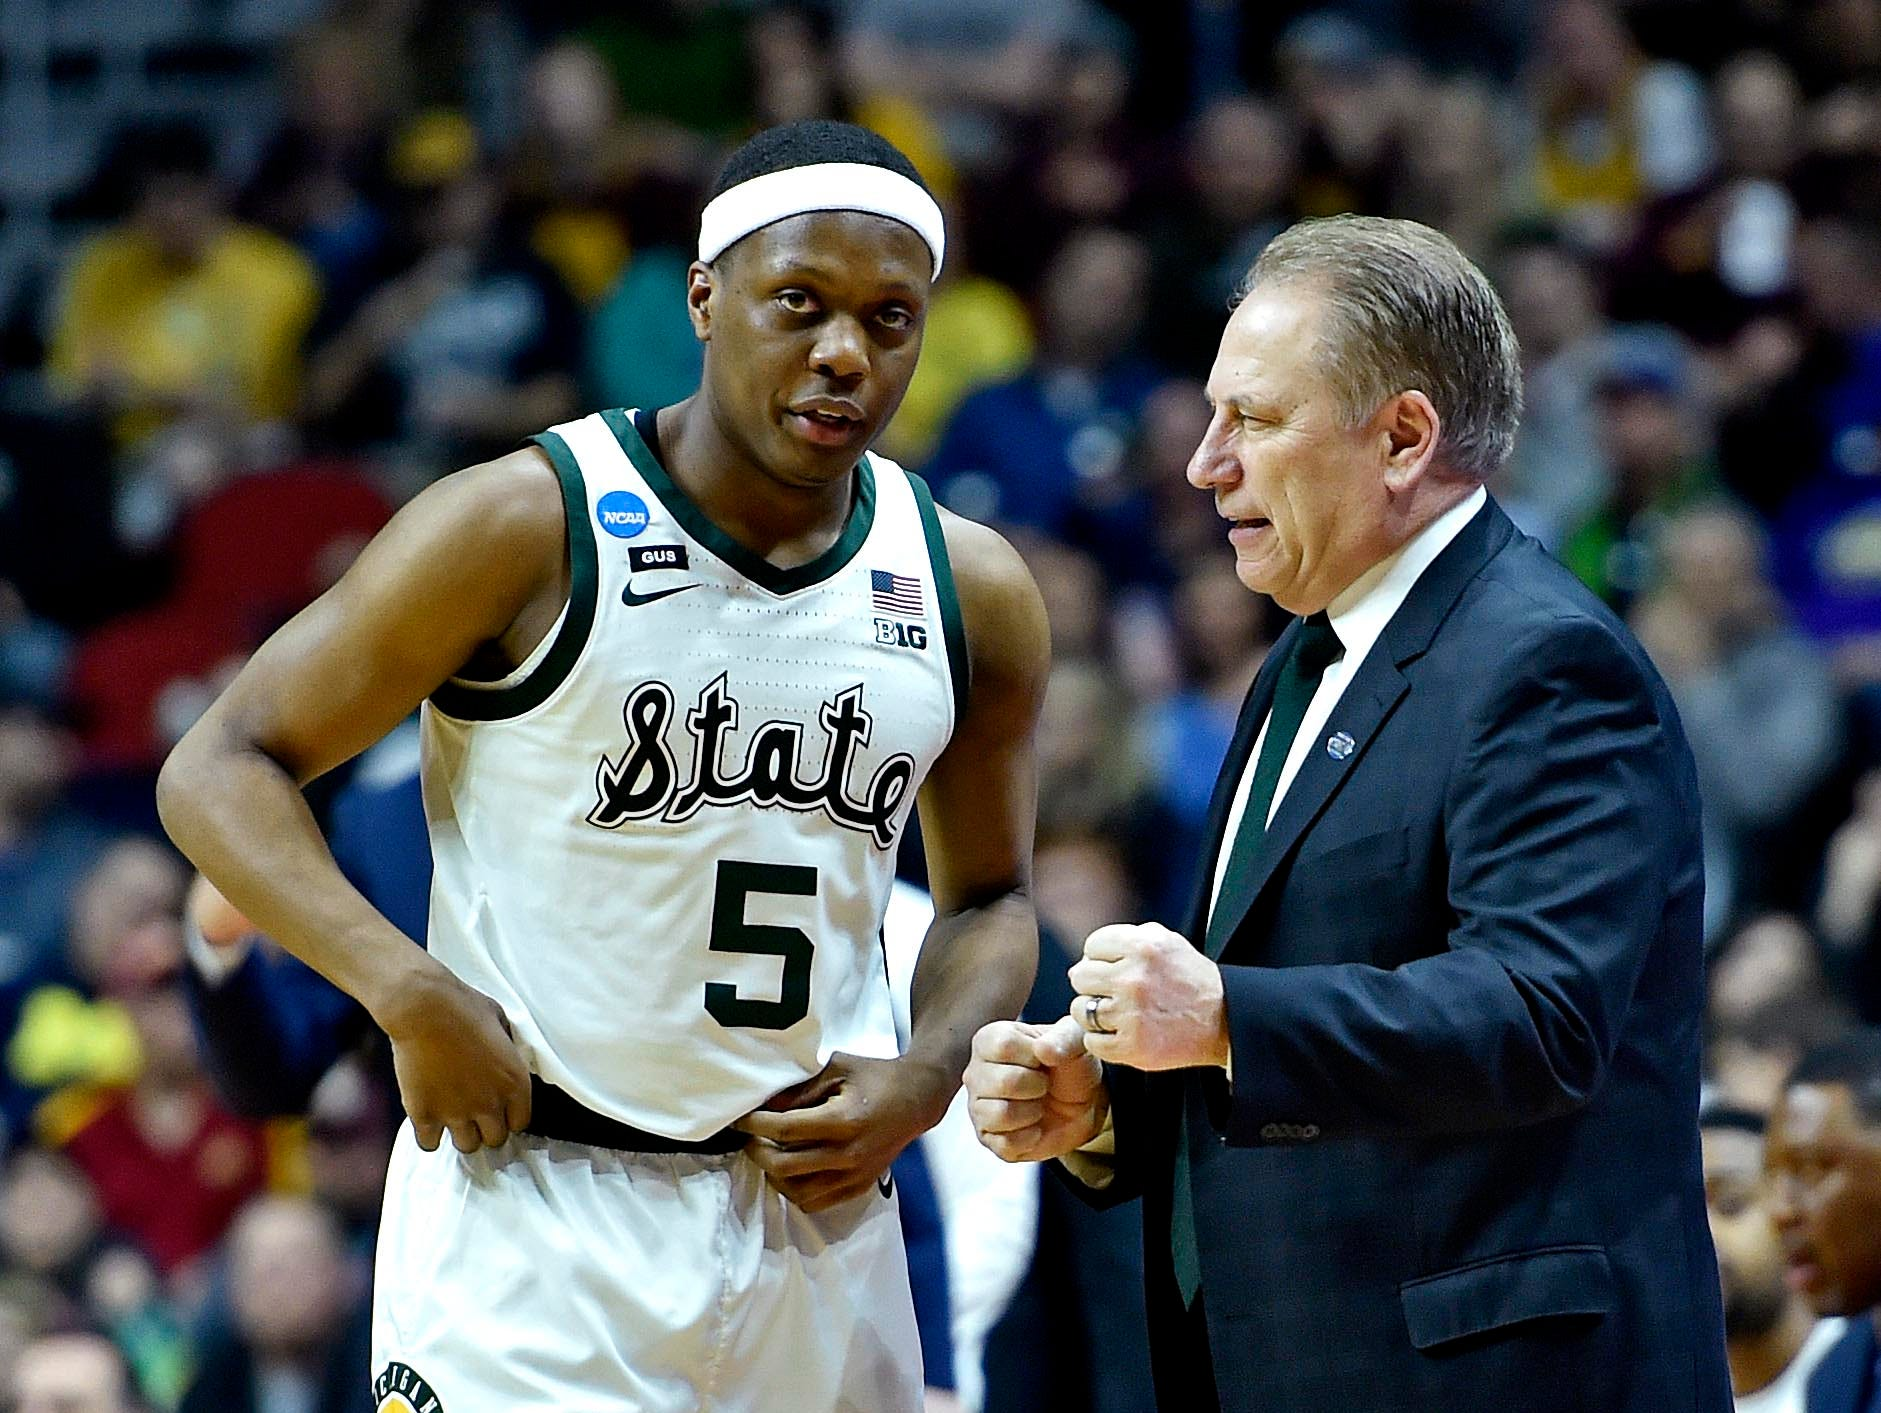 Mar 23, 2019; Des Moines, IA, United States; Michigan State Spartans head coach Tom Izzo talks with guard Cassius Winston (5) during the first half against the Minnesota Golden Gophers in the second round of the 2019 NCAA Tournament at Wells Fargo Arena. Mandatory Credit: Jeffrey Becker-USA TODAY Sports